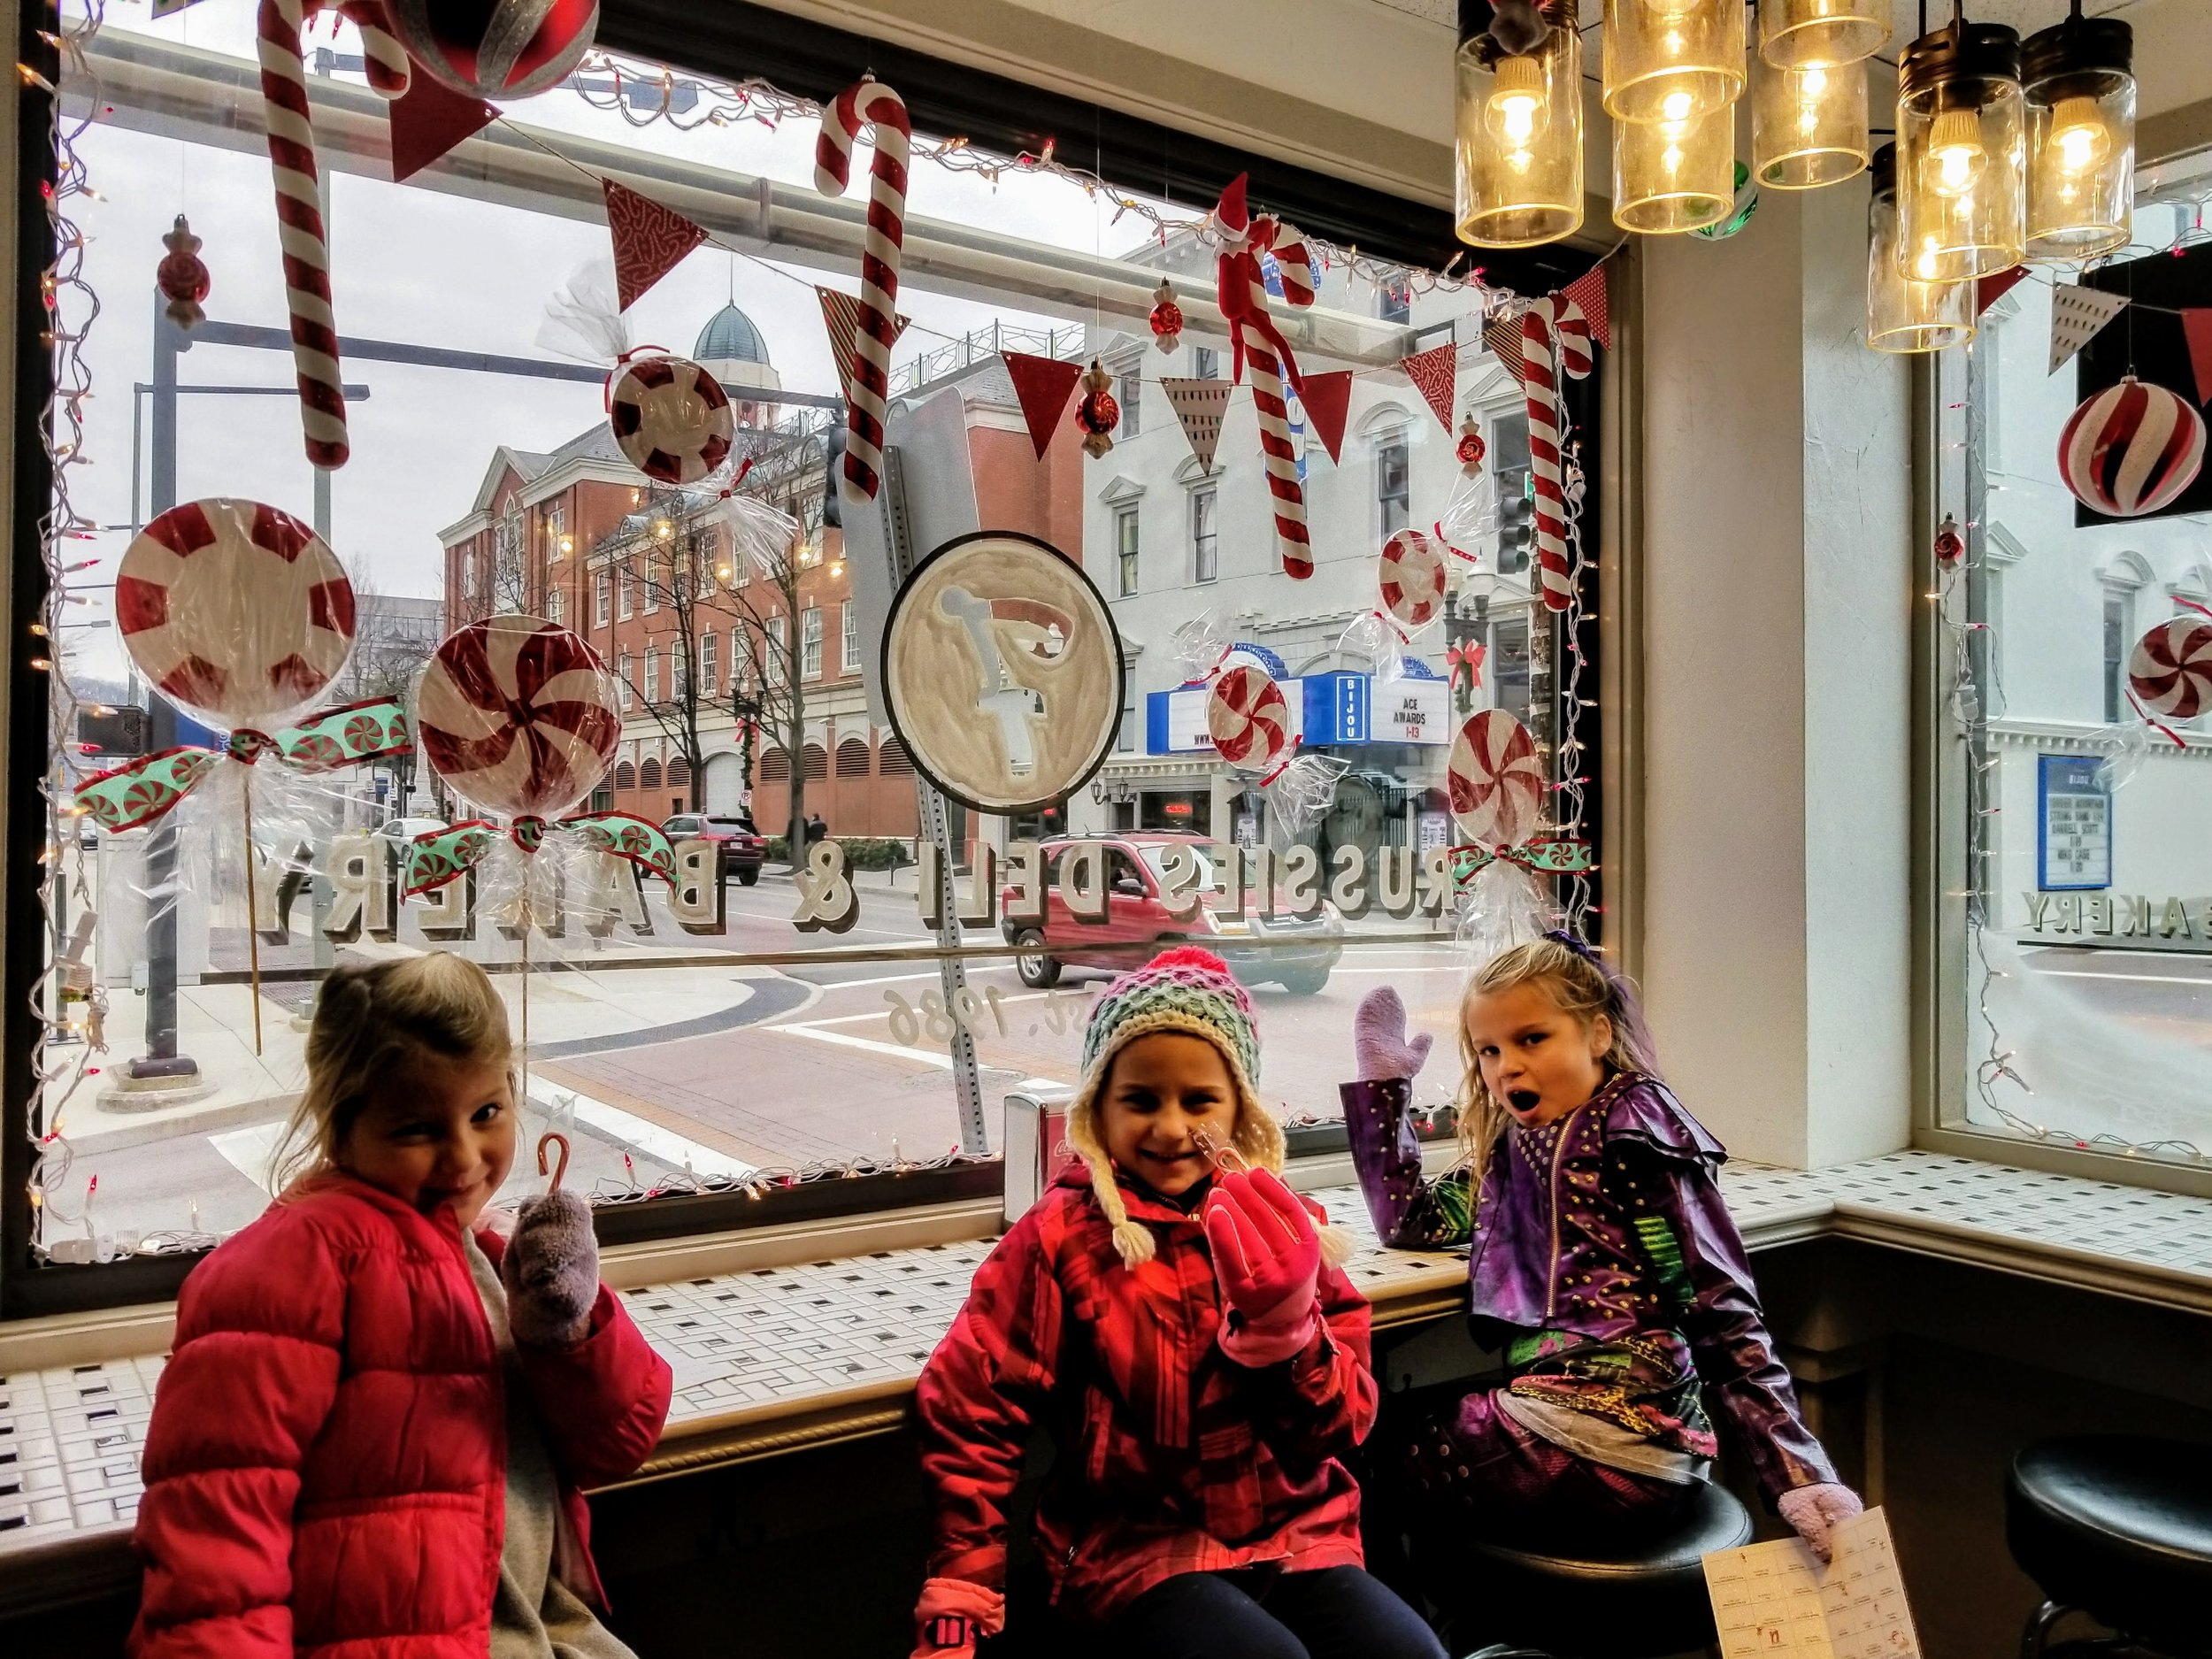 Frussies Deli and Bakery was a hit with the kids because they gave them candy canes. See if you can spot the elf in the picture.